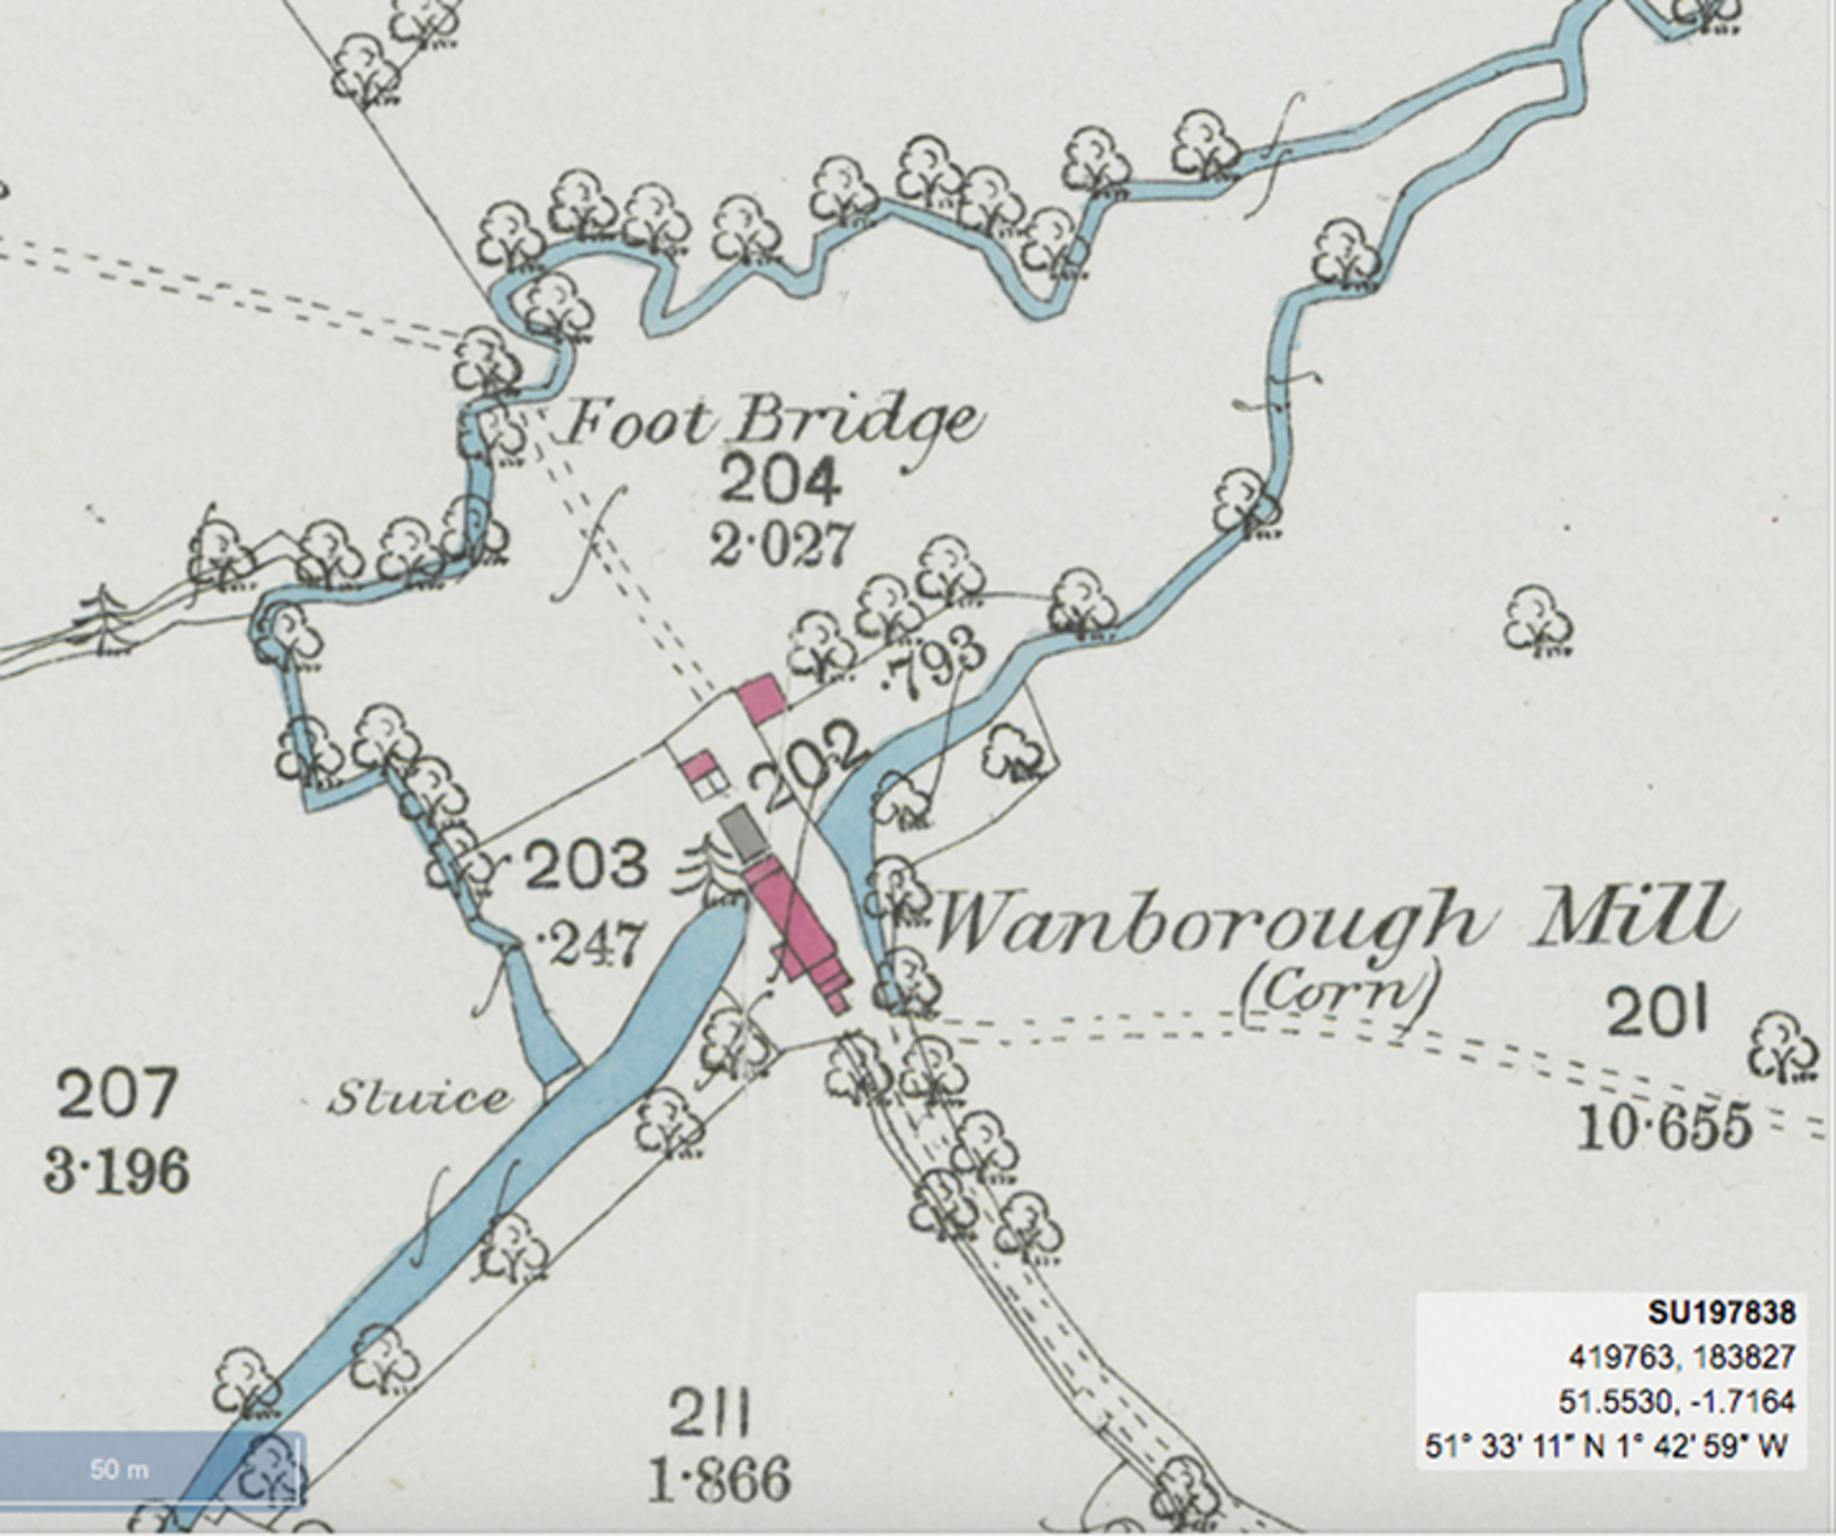 Location of the mill. Photo courtesy of National Library of Scotland.